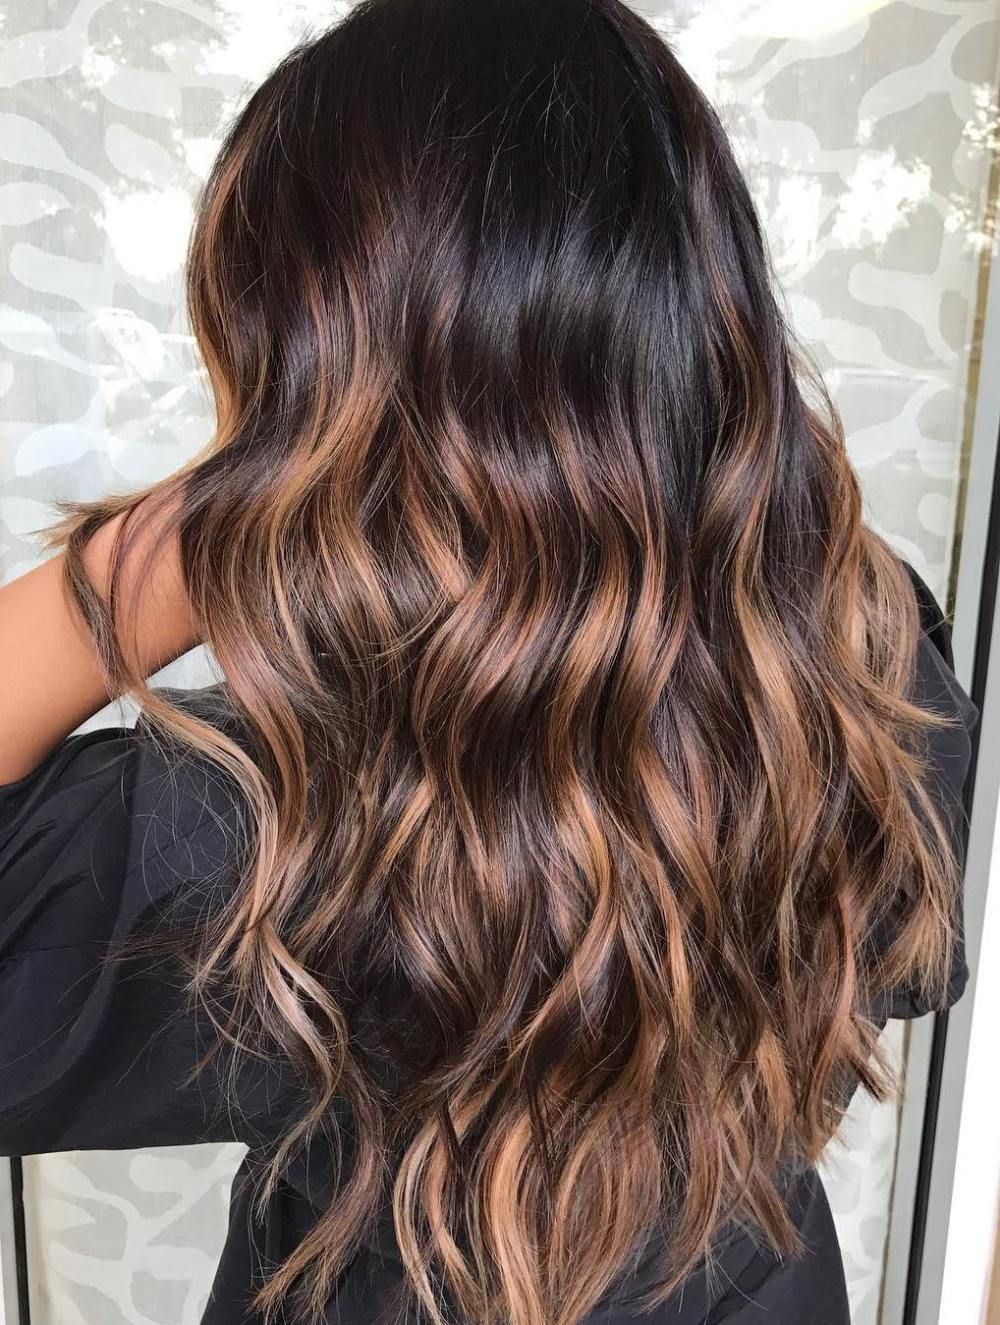 best balayage hair color ideas 70 flattering styles for 2018 les cheveux et cheveux. Black Bedroom Furniture Sets. Home Design Ideas